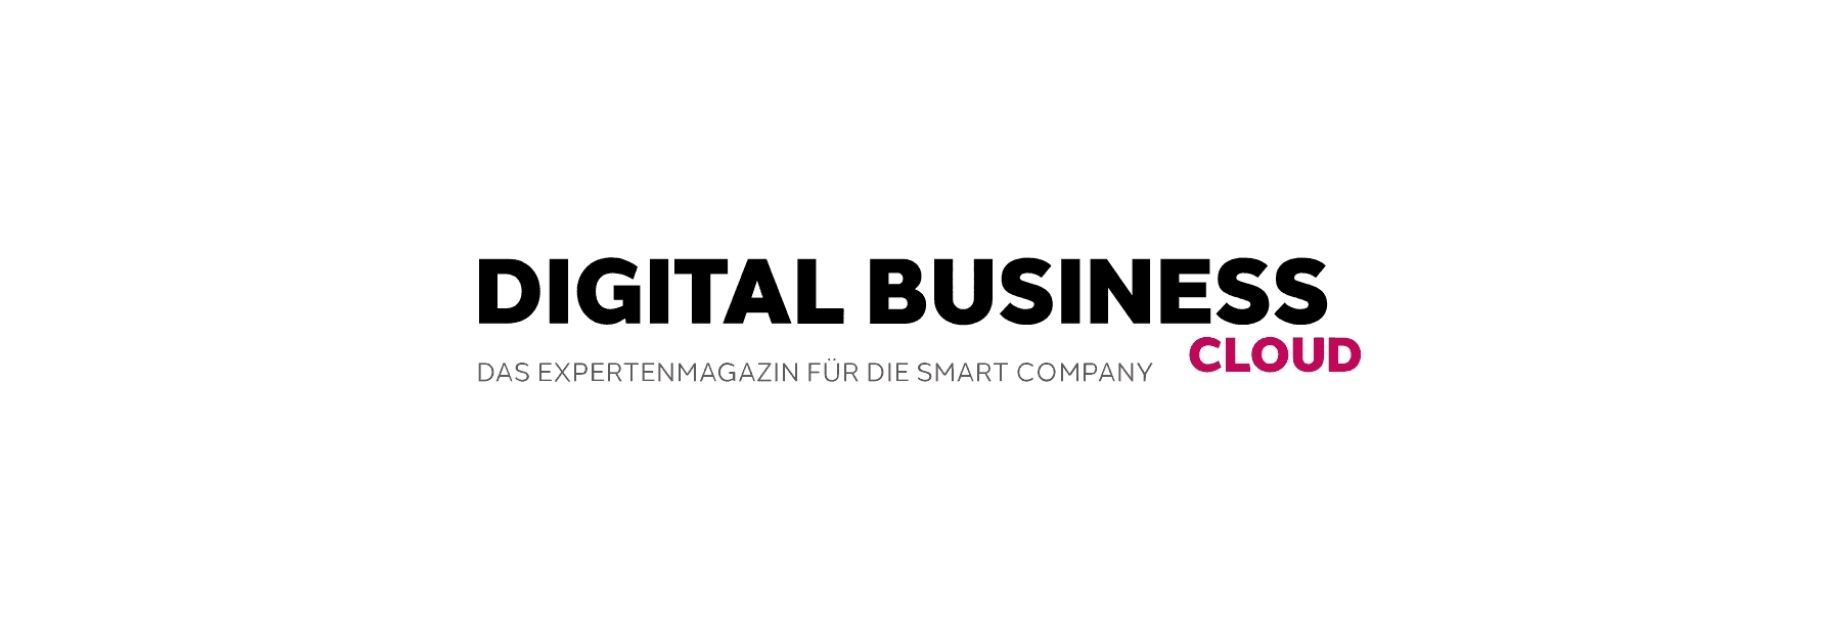 Digital Bussines Cloud